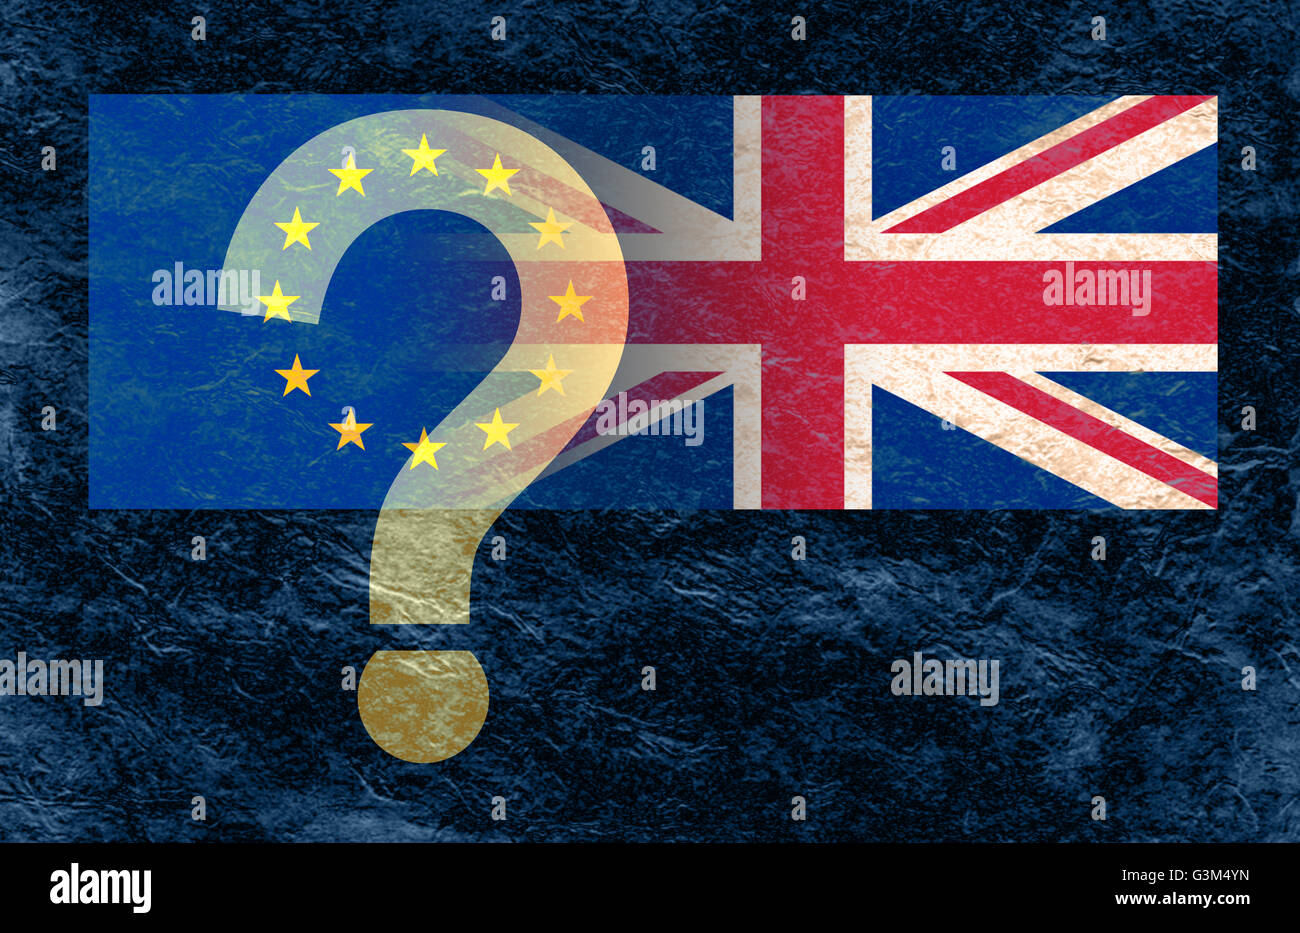 Dark stone background with a European Union flag and Union Jack flag merging together and a transparent ? over the Stock Photo